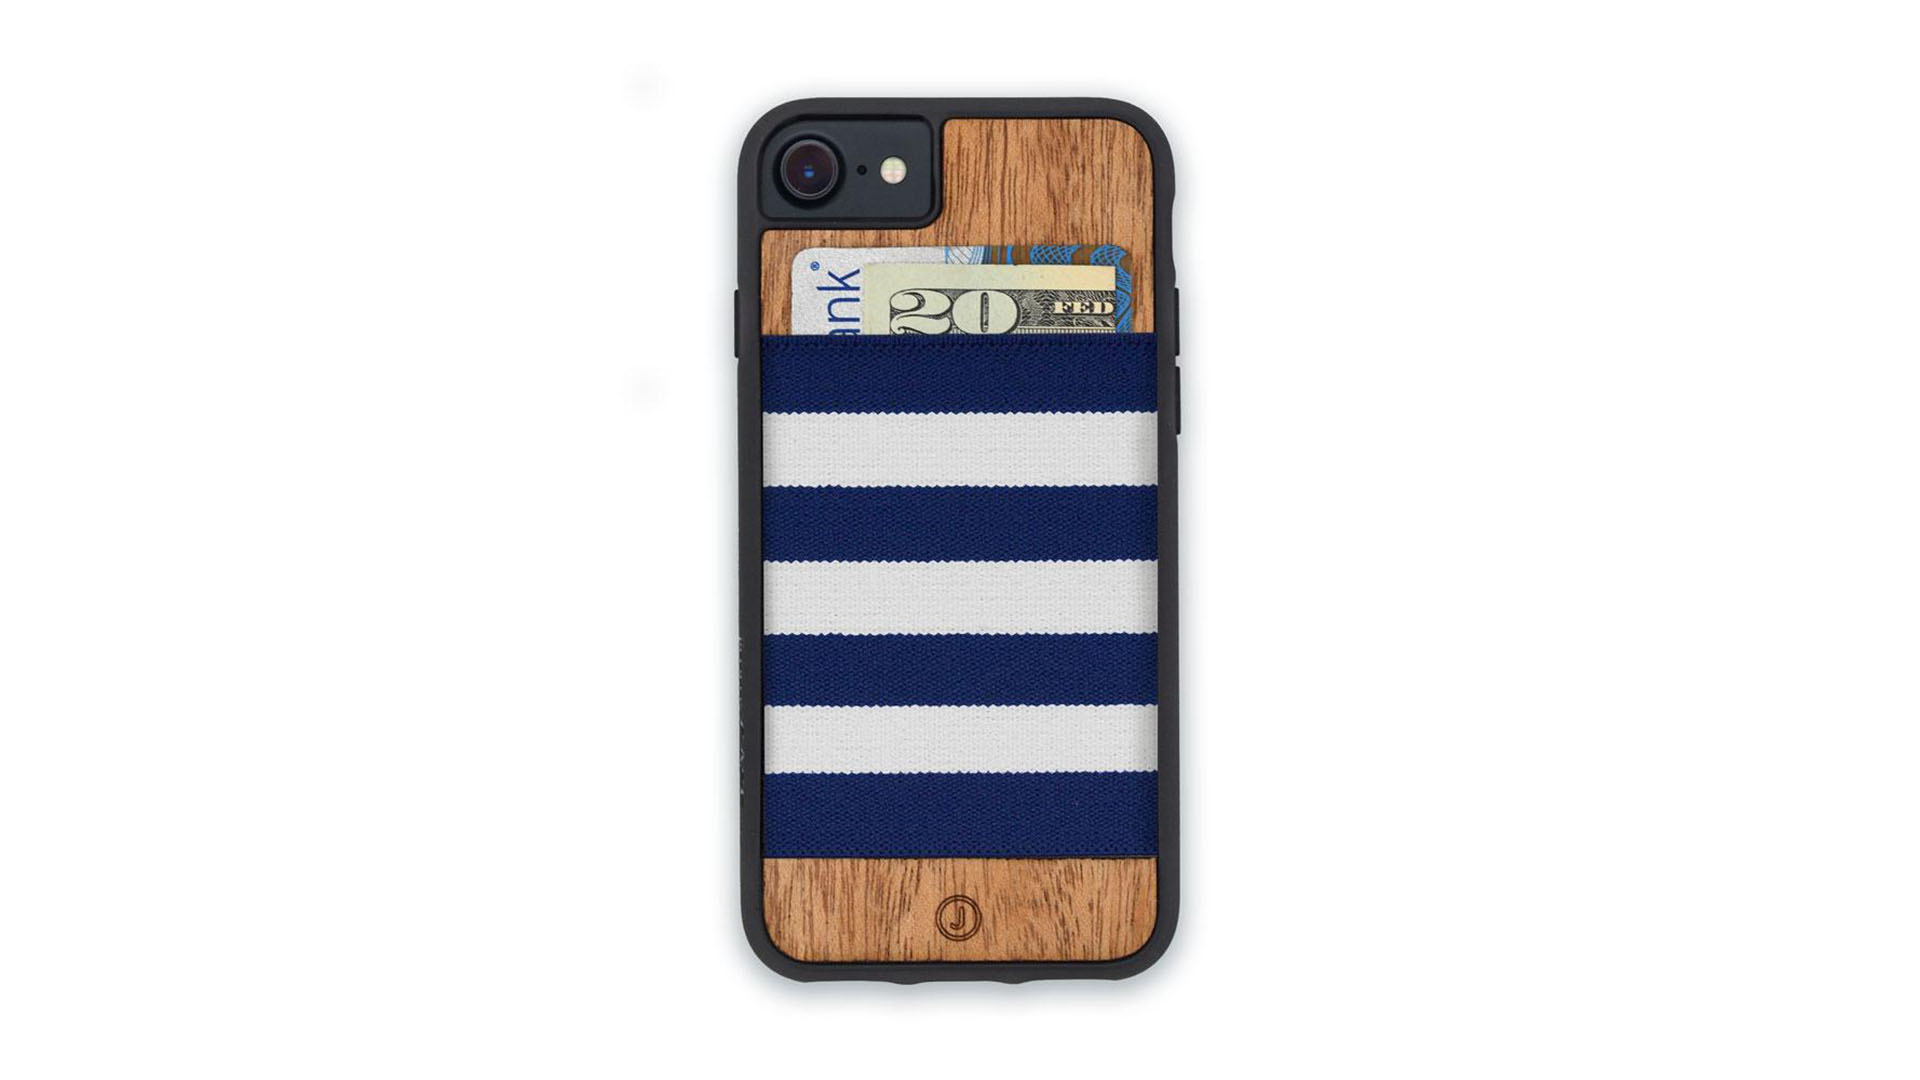 Jimmycase iPhone 7 Wallet Case